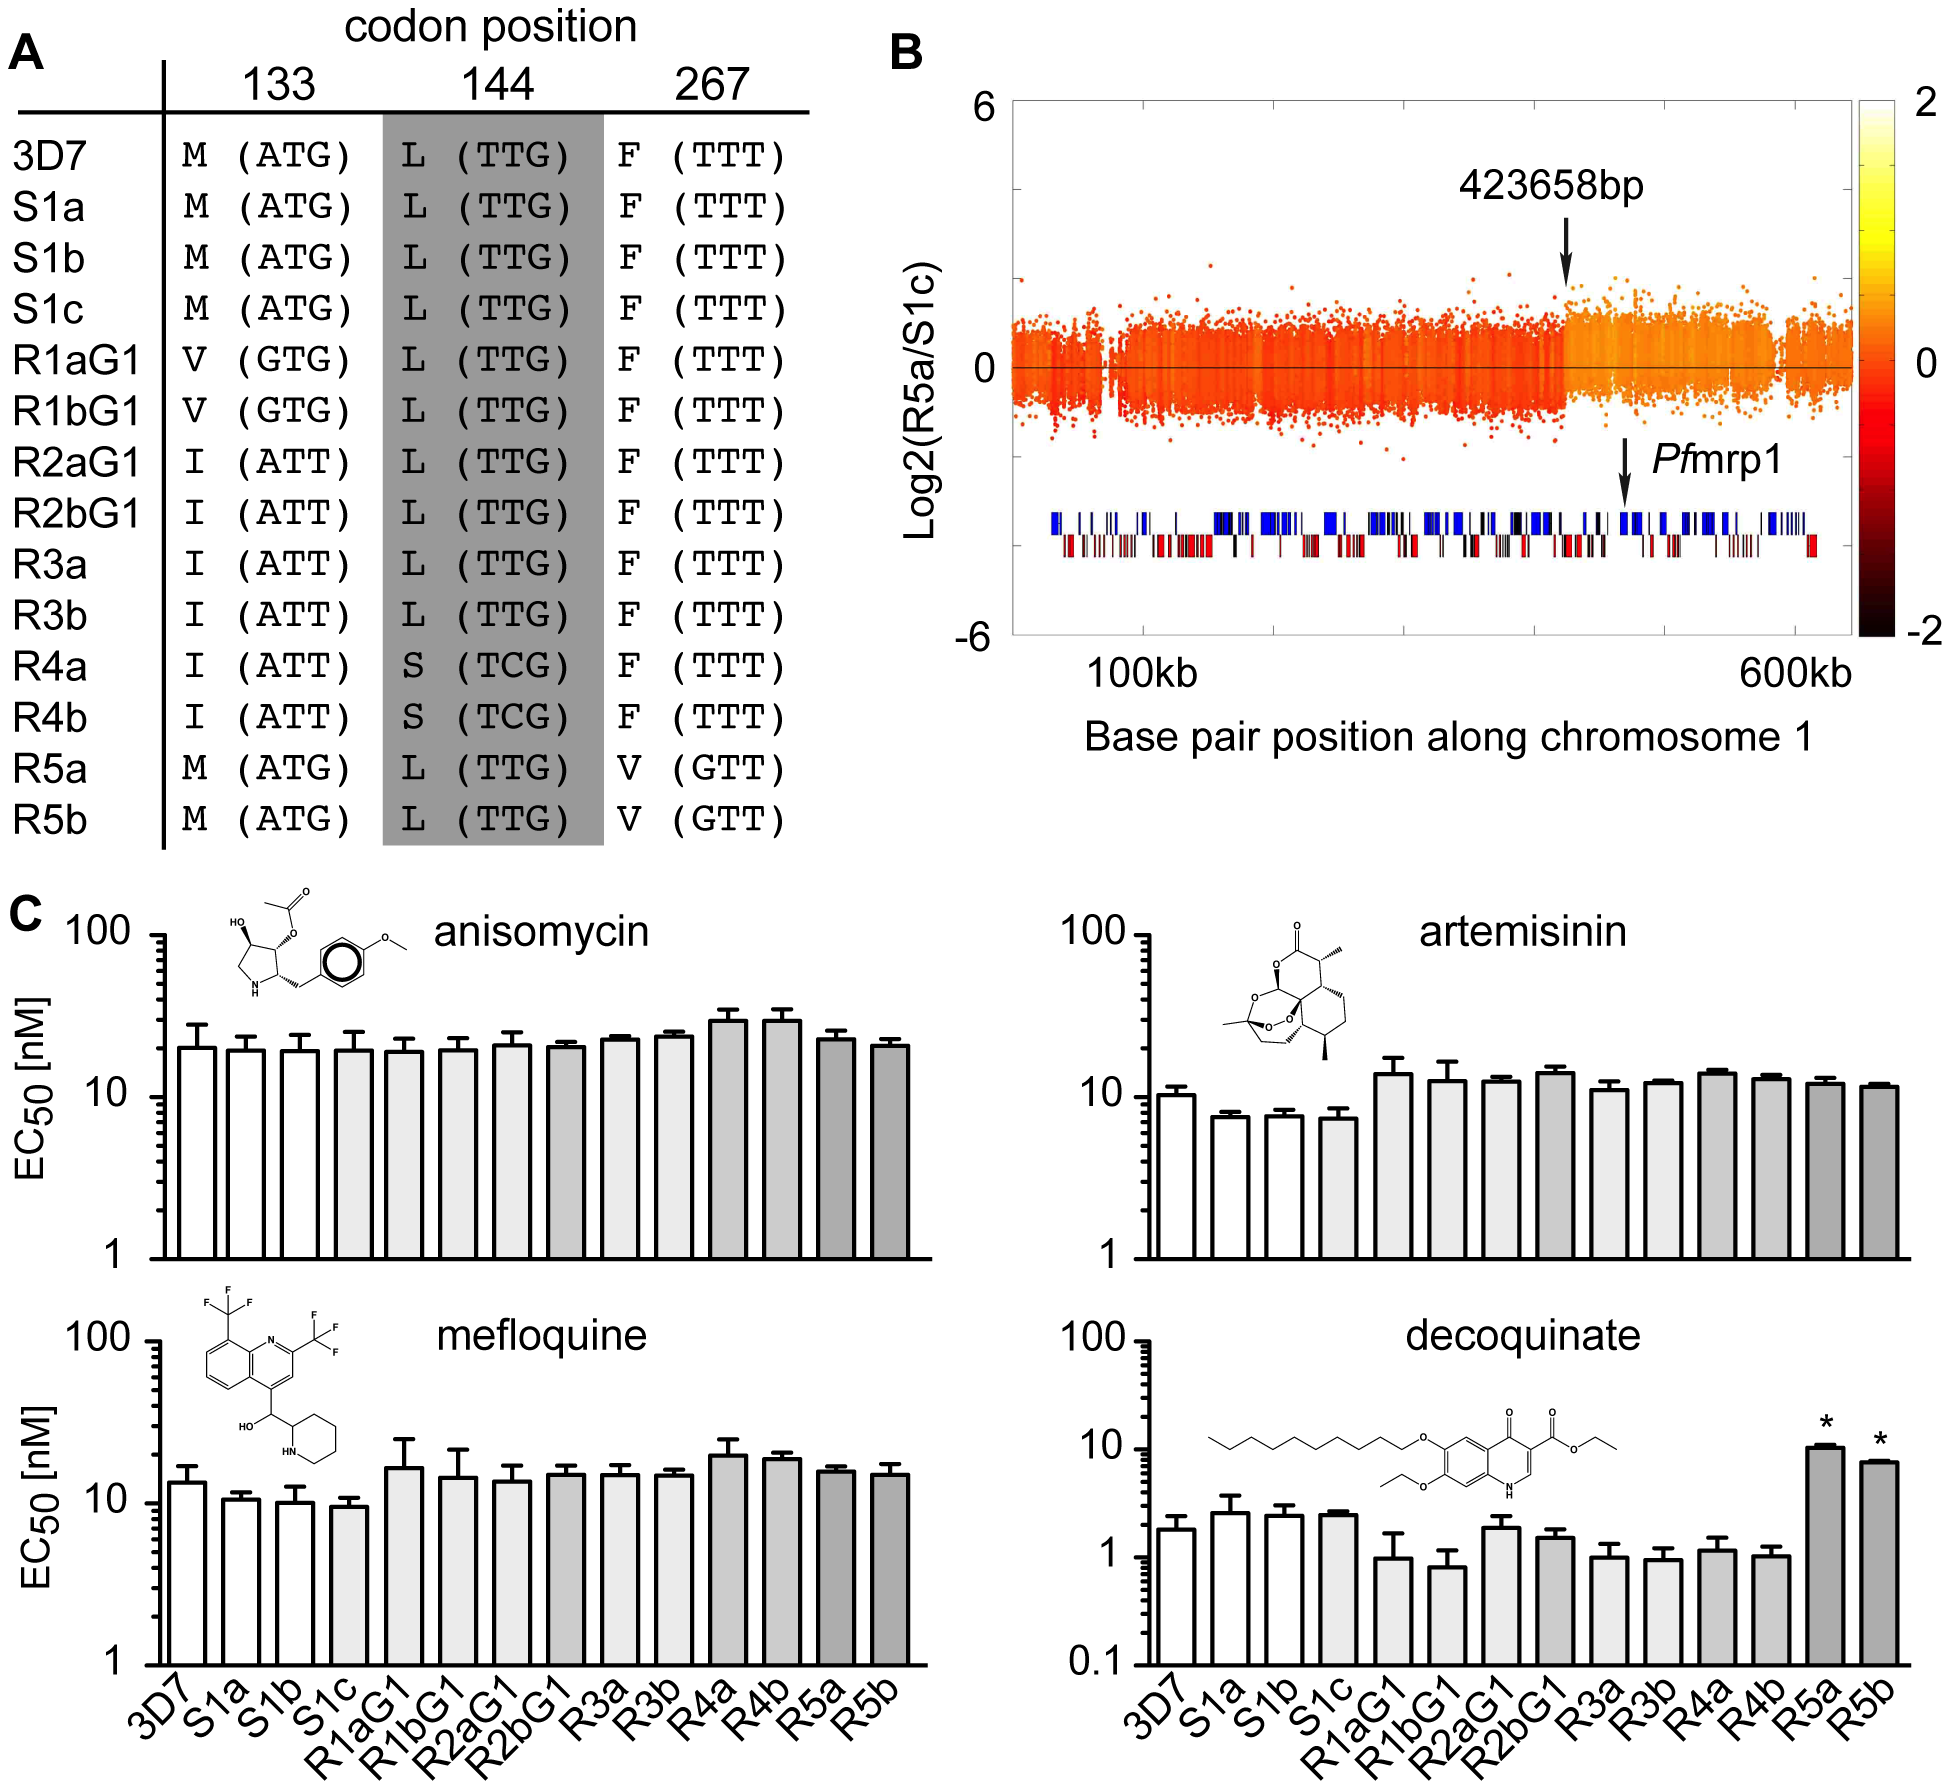 Genomic changes and drug sensitivities of atovaquone (ATQ)-selected clones.